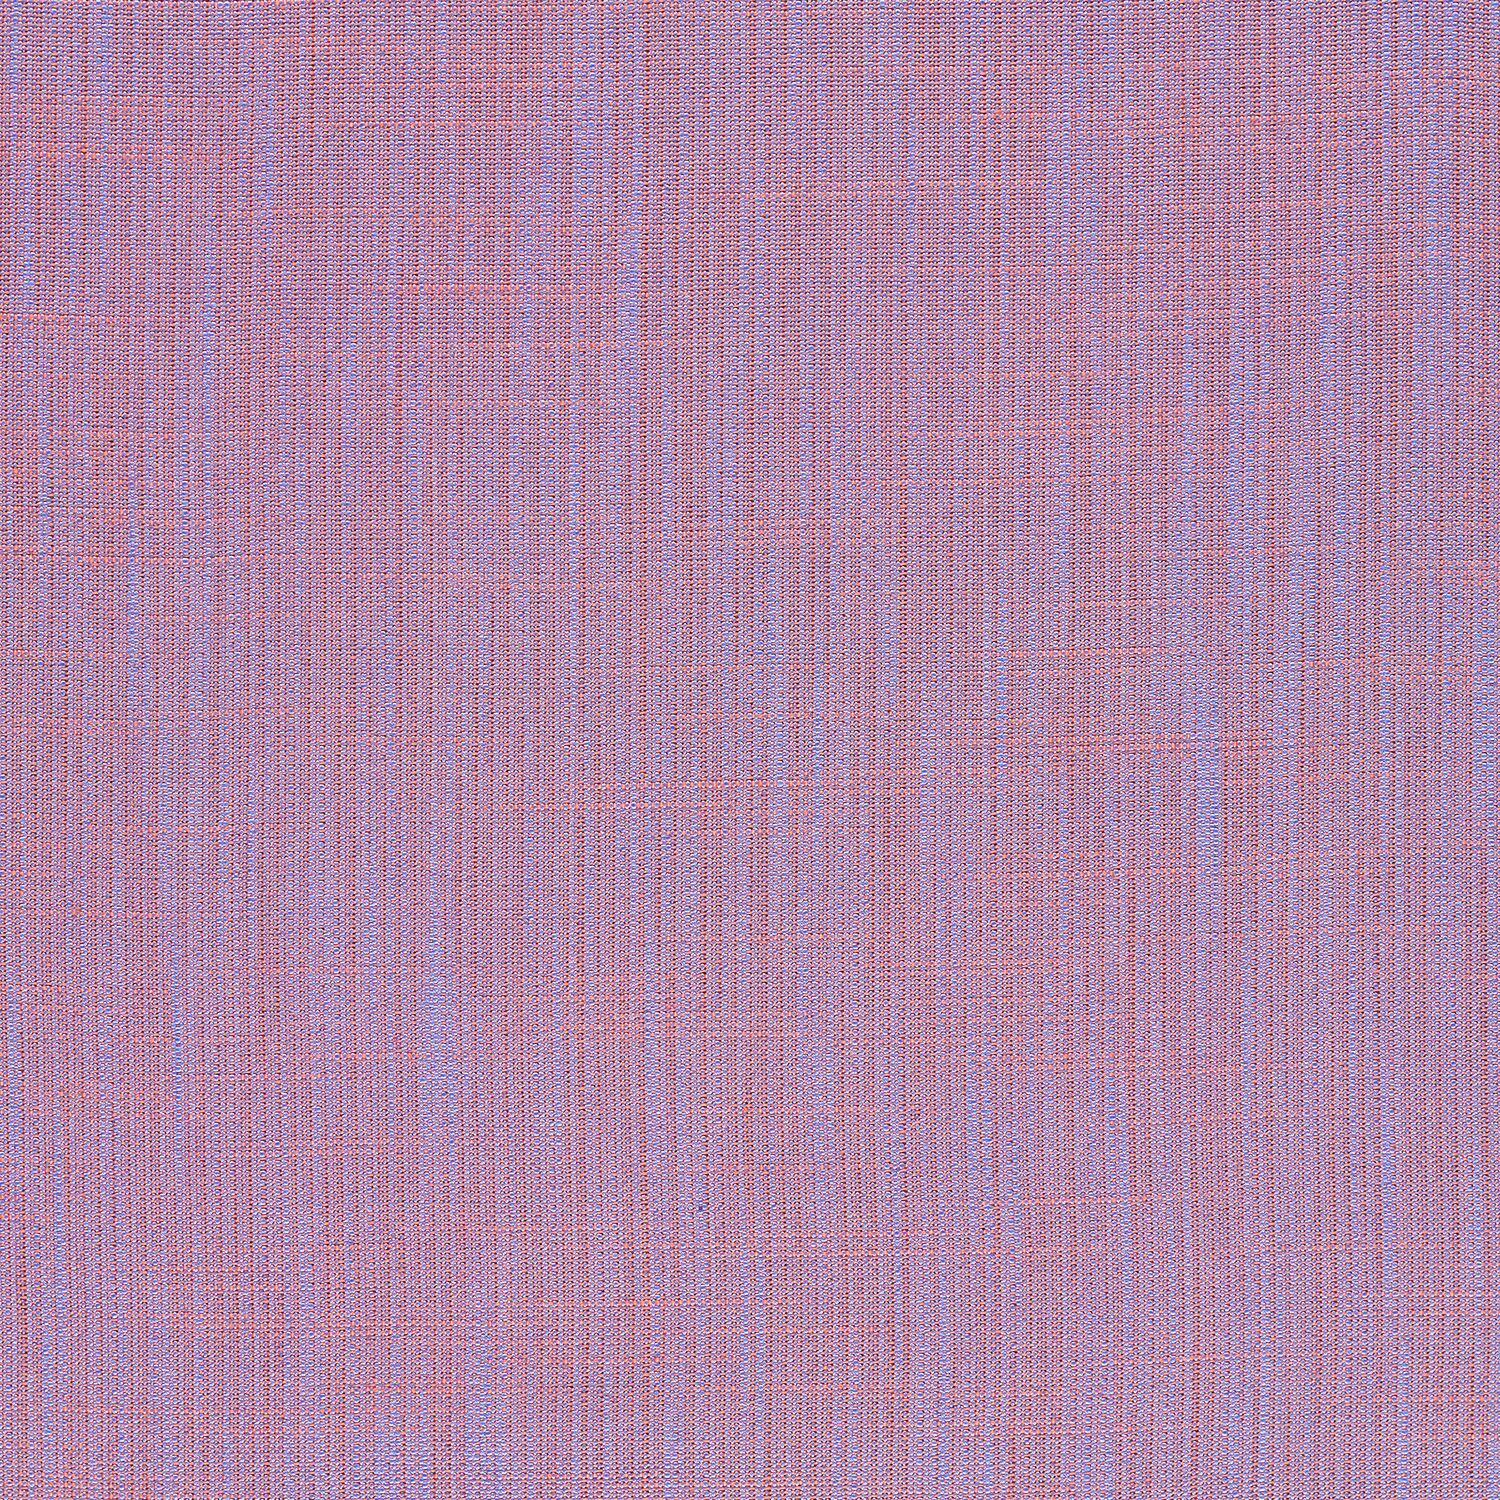 Duo Chrome - Boysenberry - 4076 - 15 - Half Yard Tileable Swatches